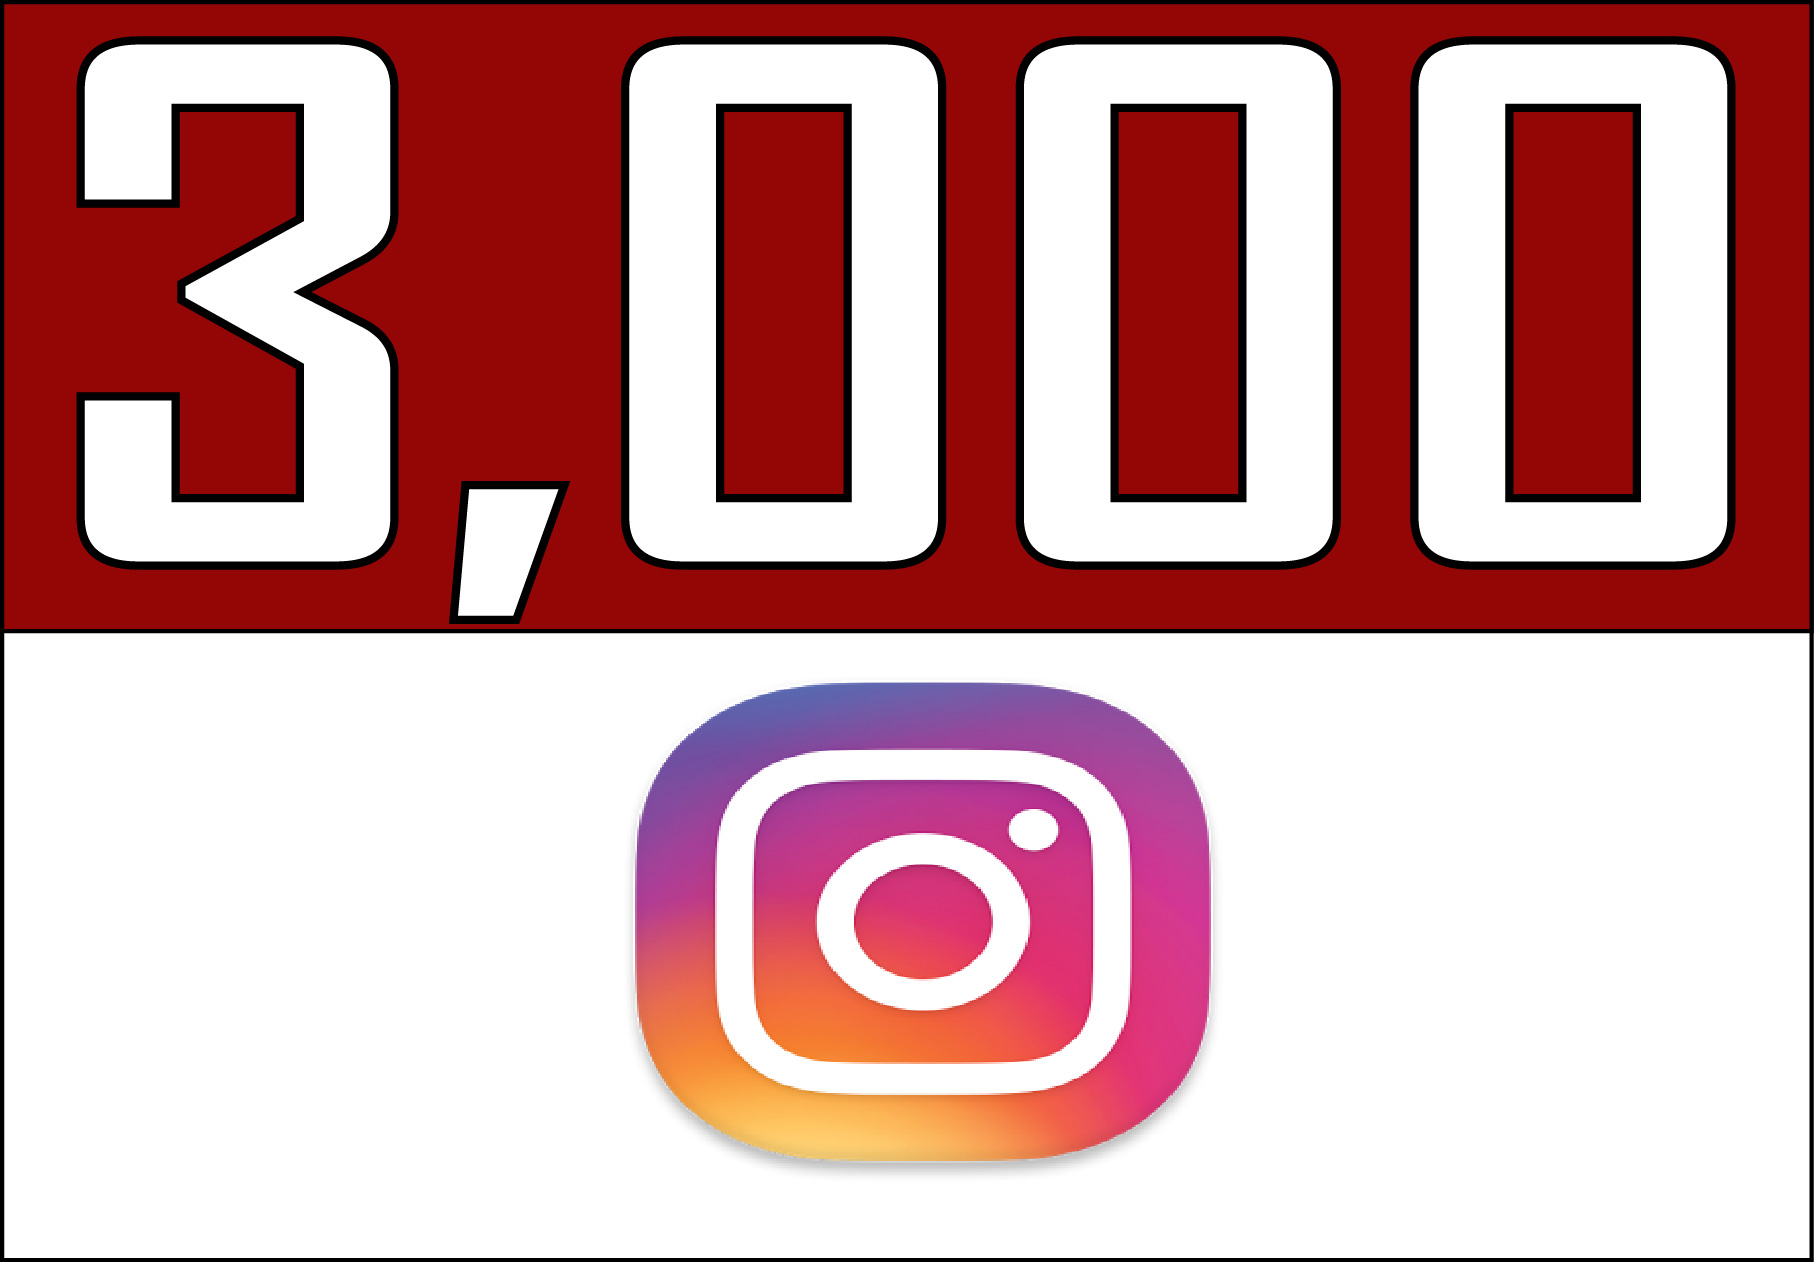 Instagram 3,000 Instant Fast (LIKES)